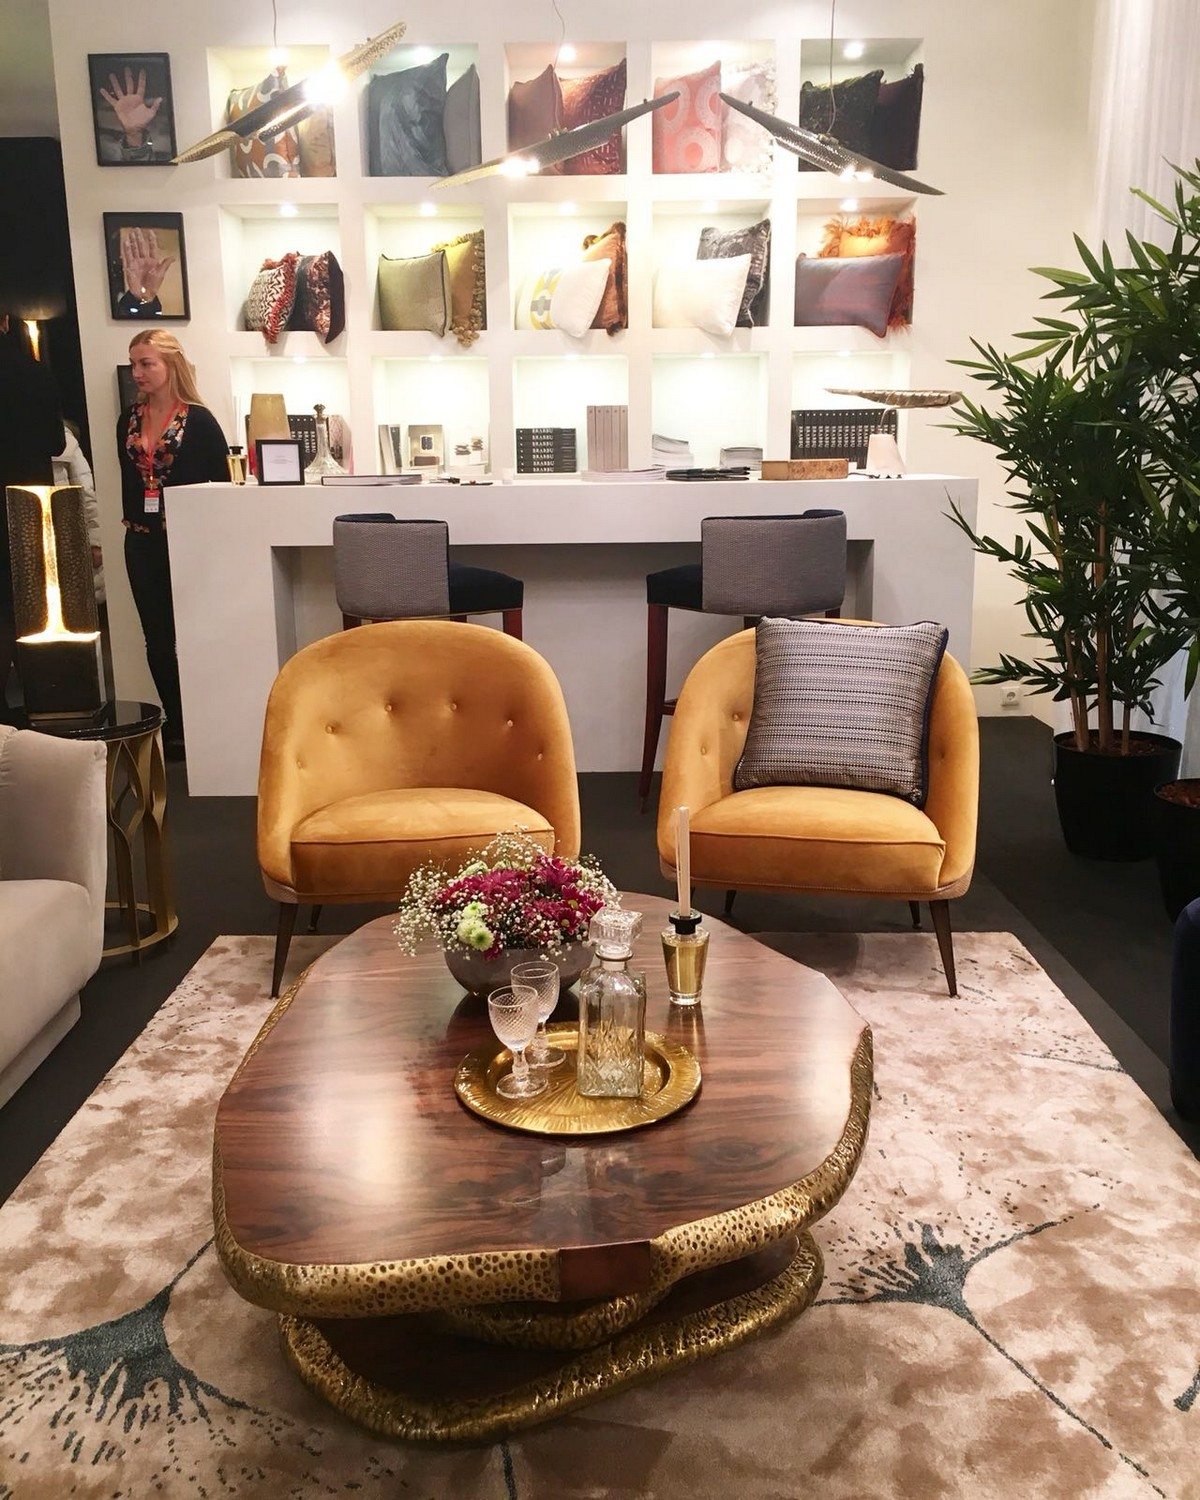 living room, ideas, living room decor, luxury living room, living room design, modern design, exclusive design, design forces, luxury center tables, home decor  living room Give Some Design Force To Your Living Room ultimate modern chairs at maison et objet 4